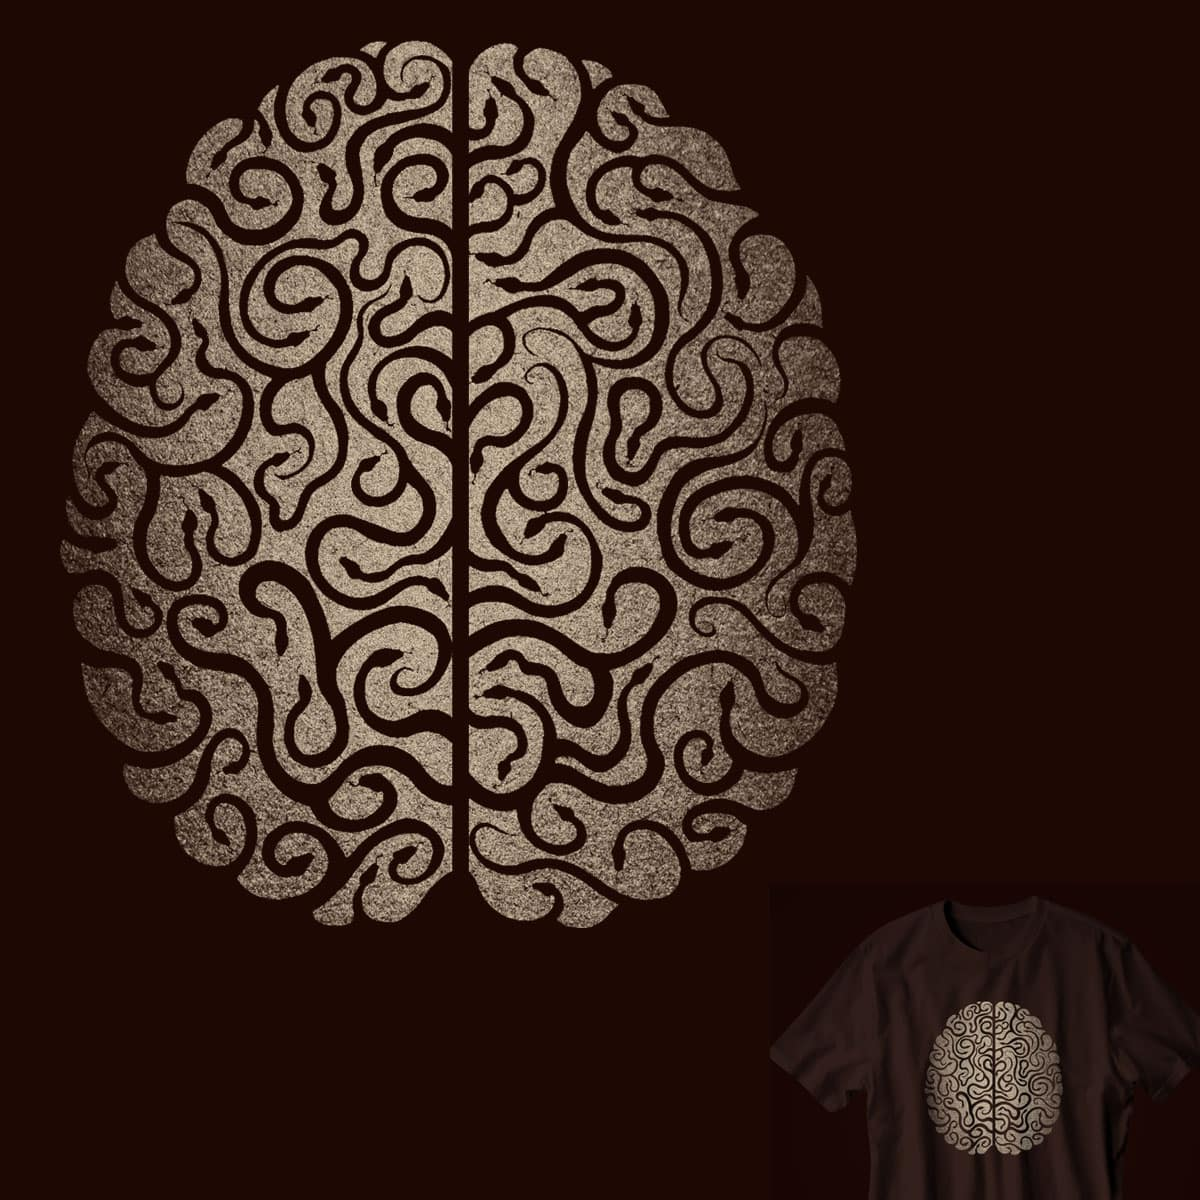 Inside the Minds of Traitors by dampa on Threadless